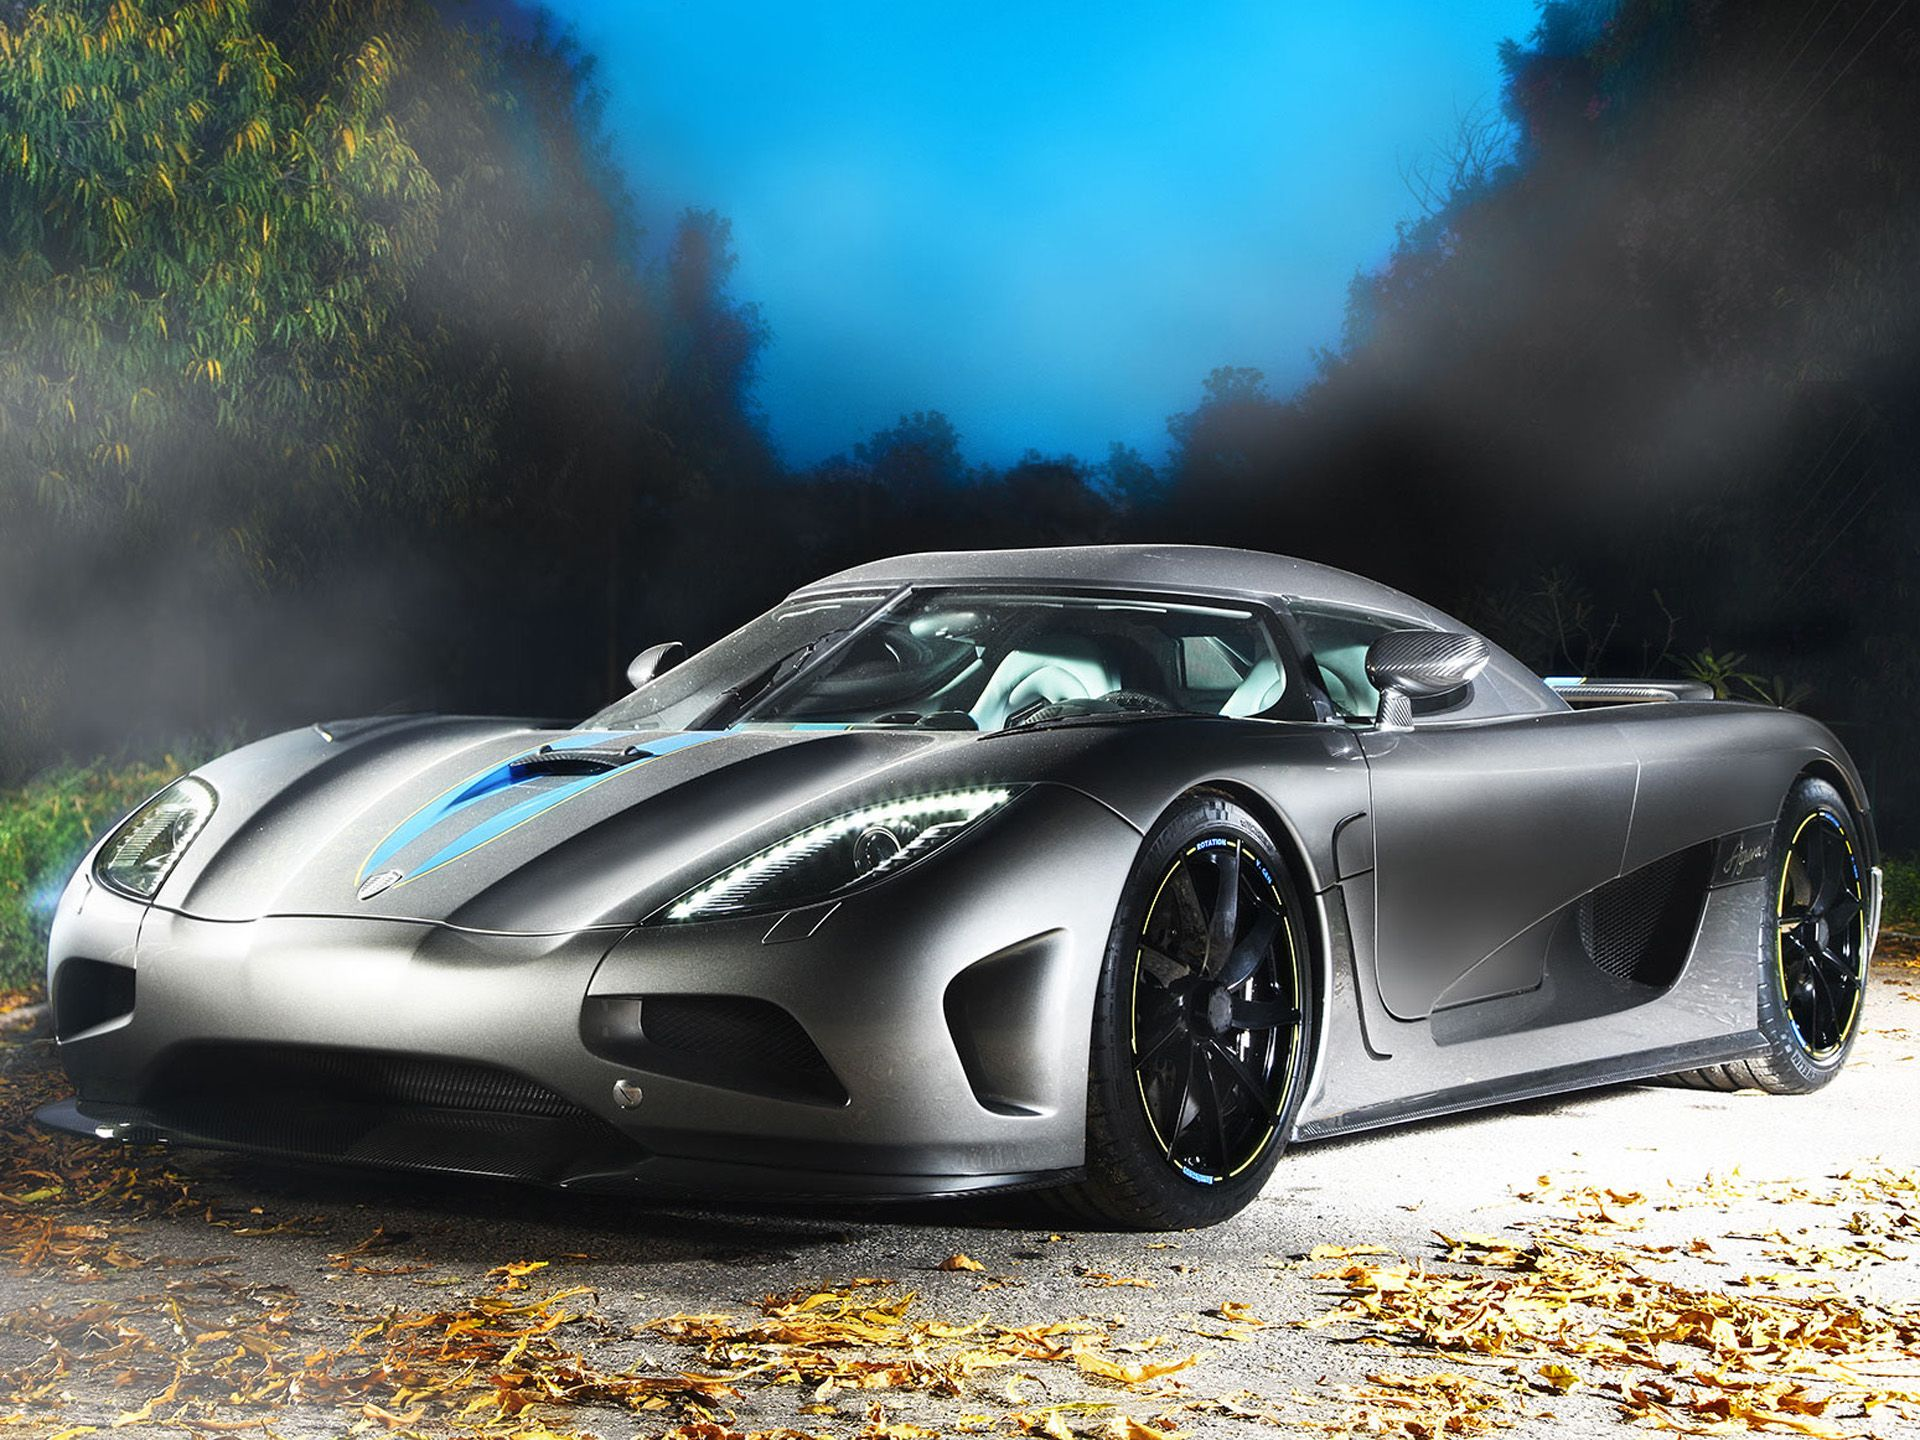 2013 Hypercar wallpapers-1080p